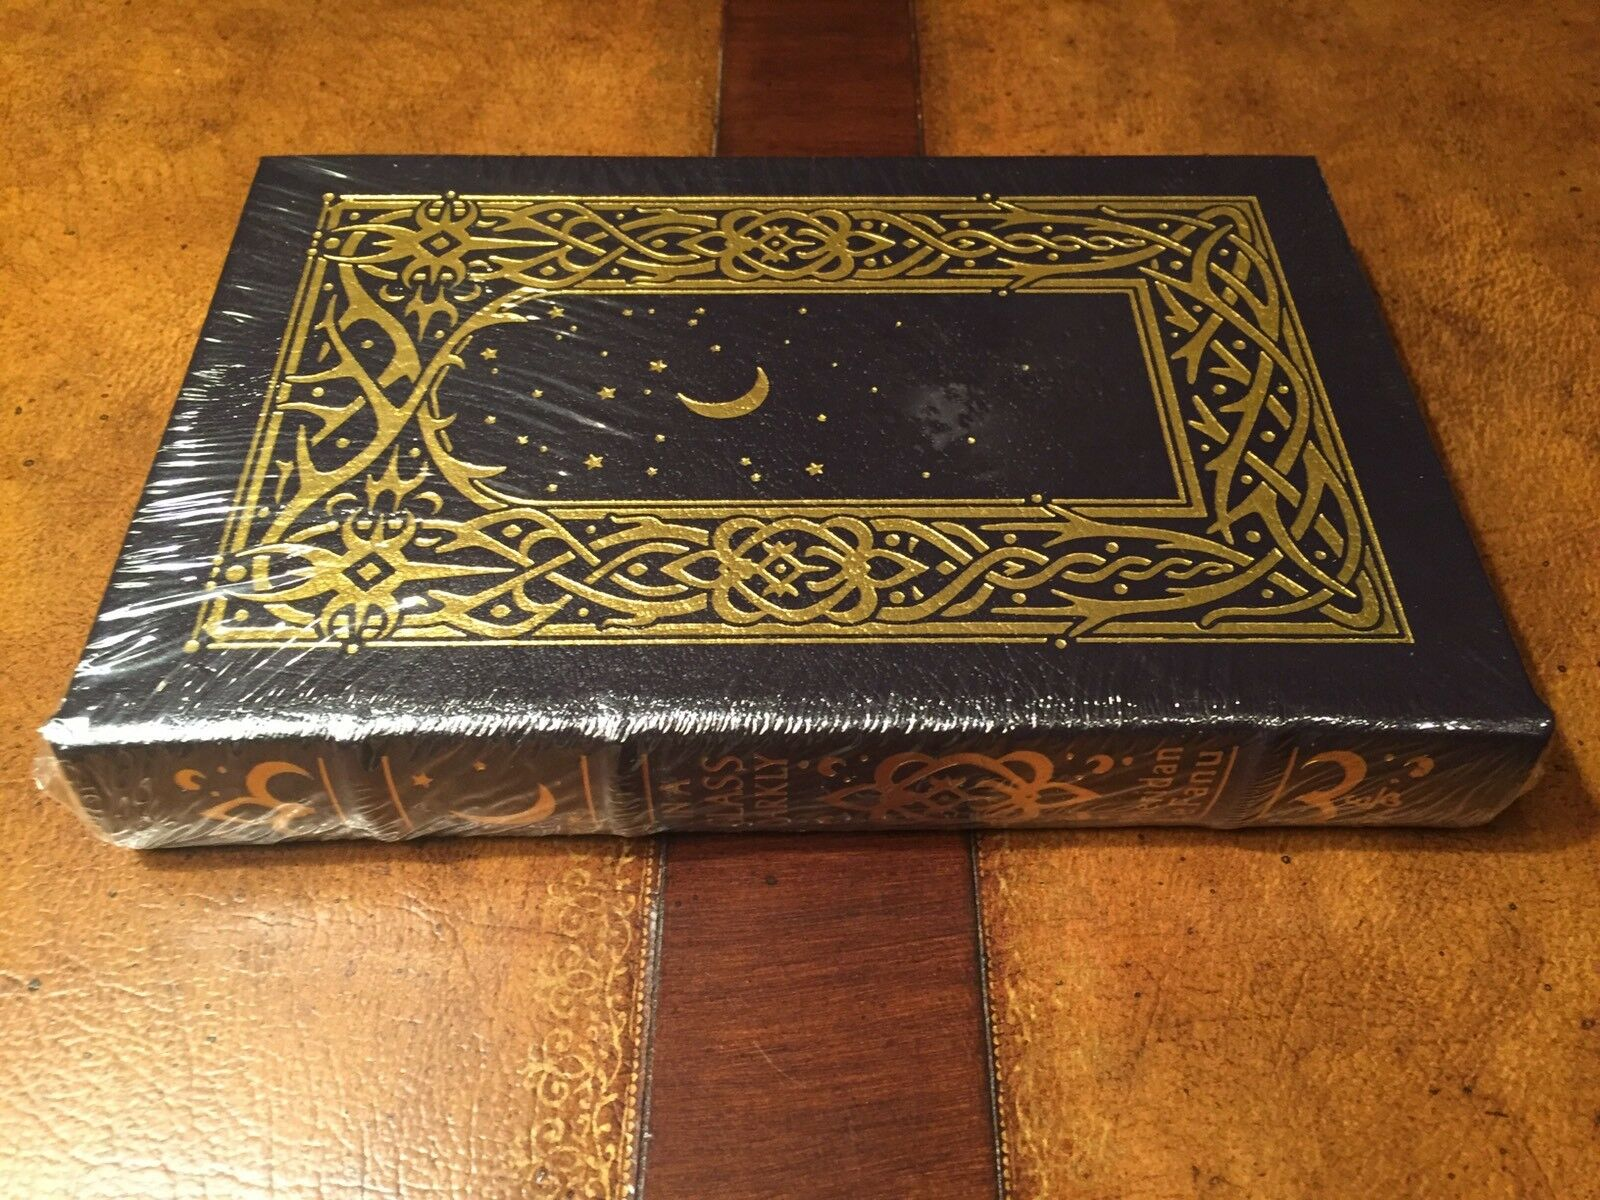 Easton press in a glass darkly by lefanu sealed 20900 picclick easton press in a glass darkly by lefanu sealed 1 of 1only 2 available see more fandeluxe Images